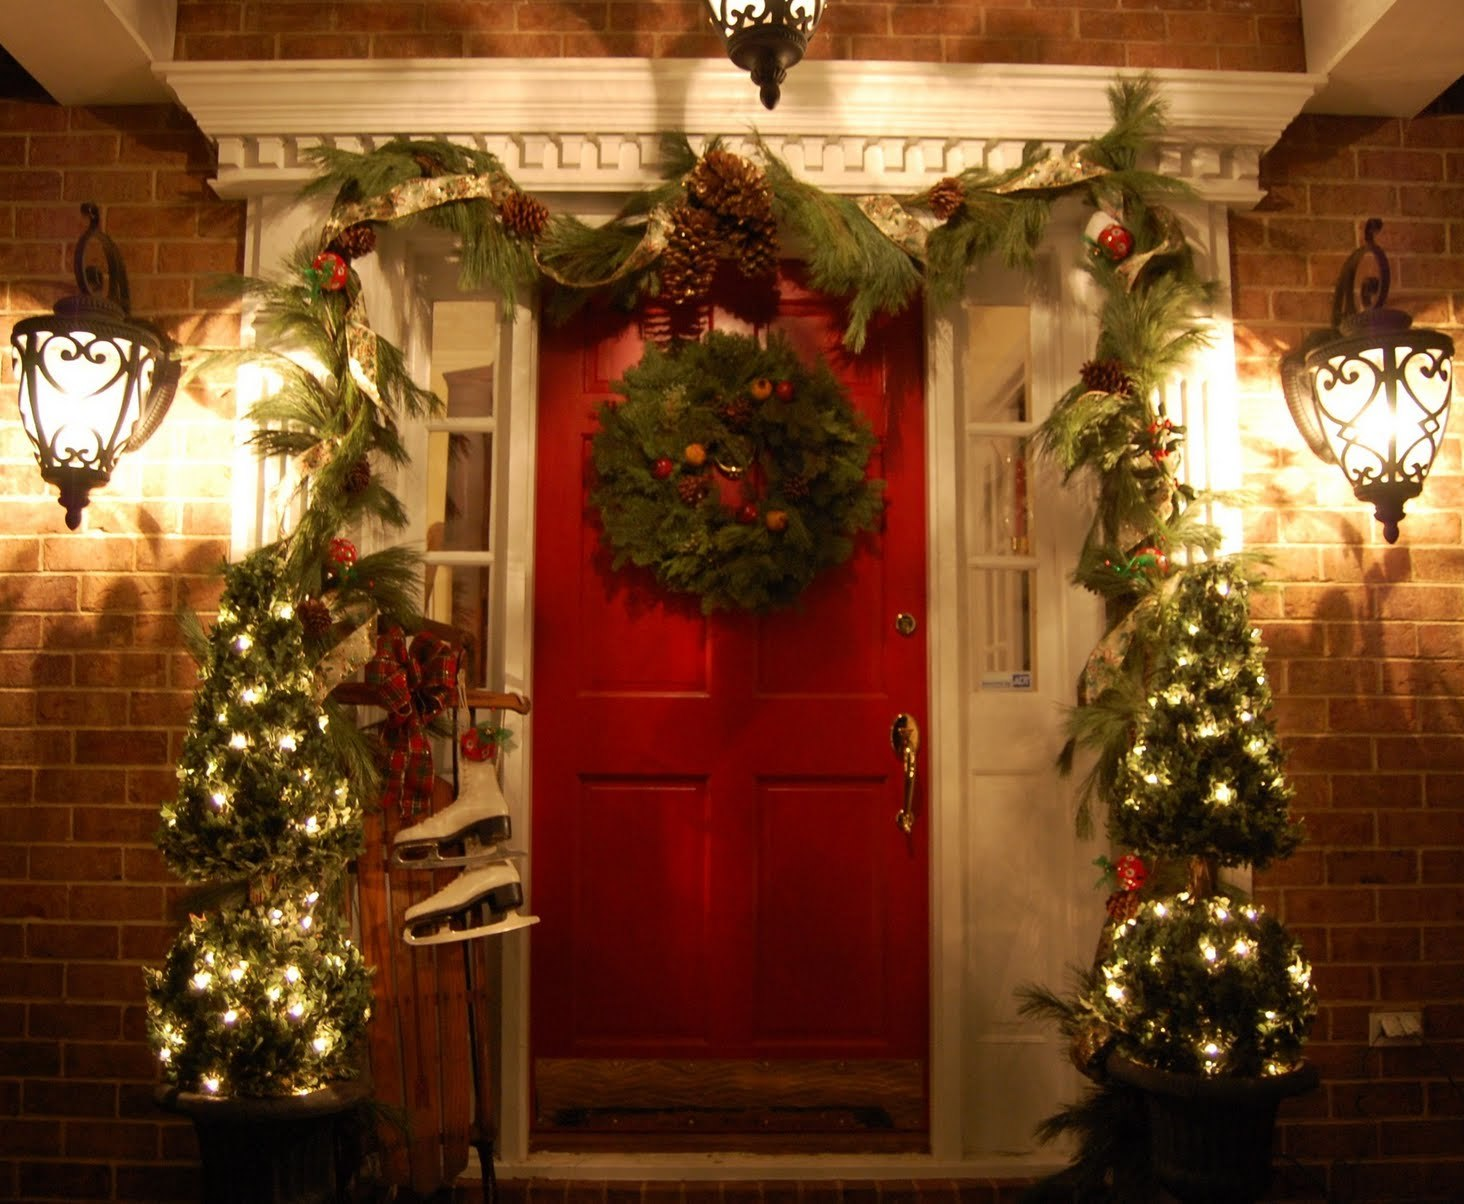 Decorating for christmas - Door decorating for christmas ...